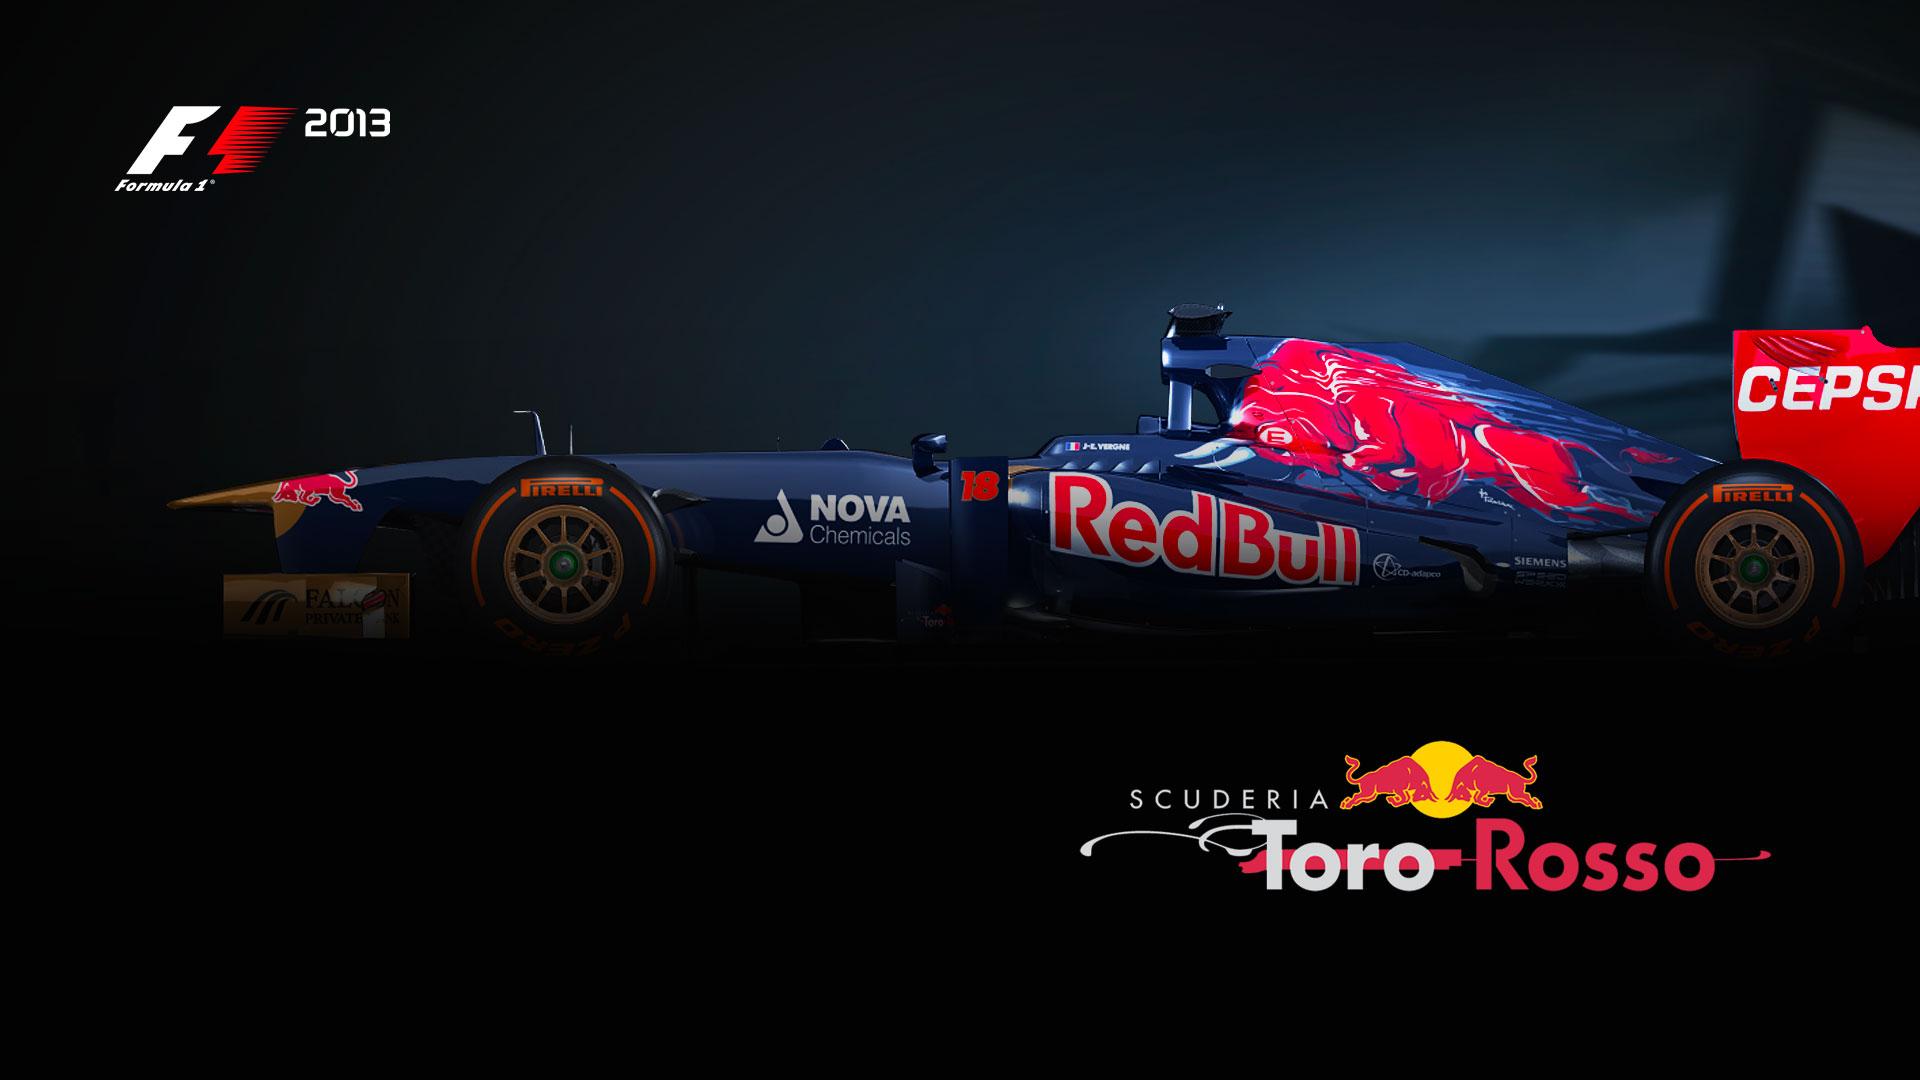 F1 2014 game wallpaper